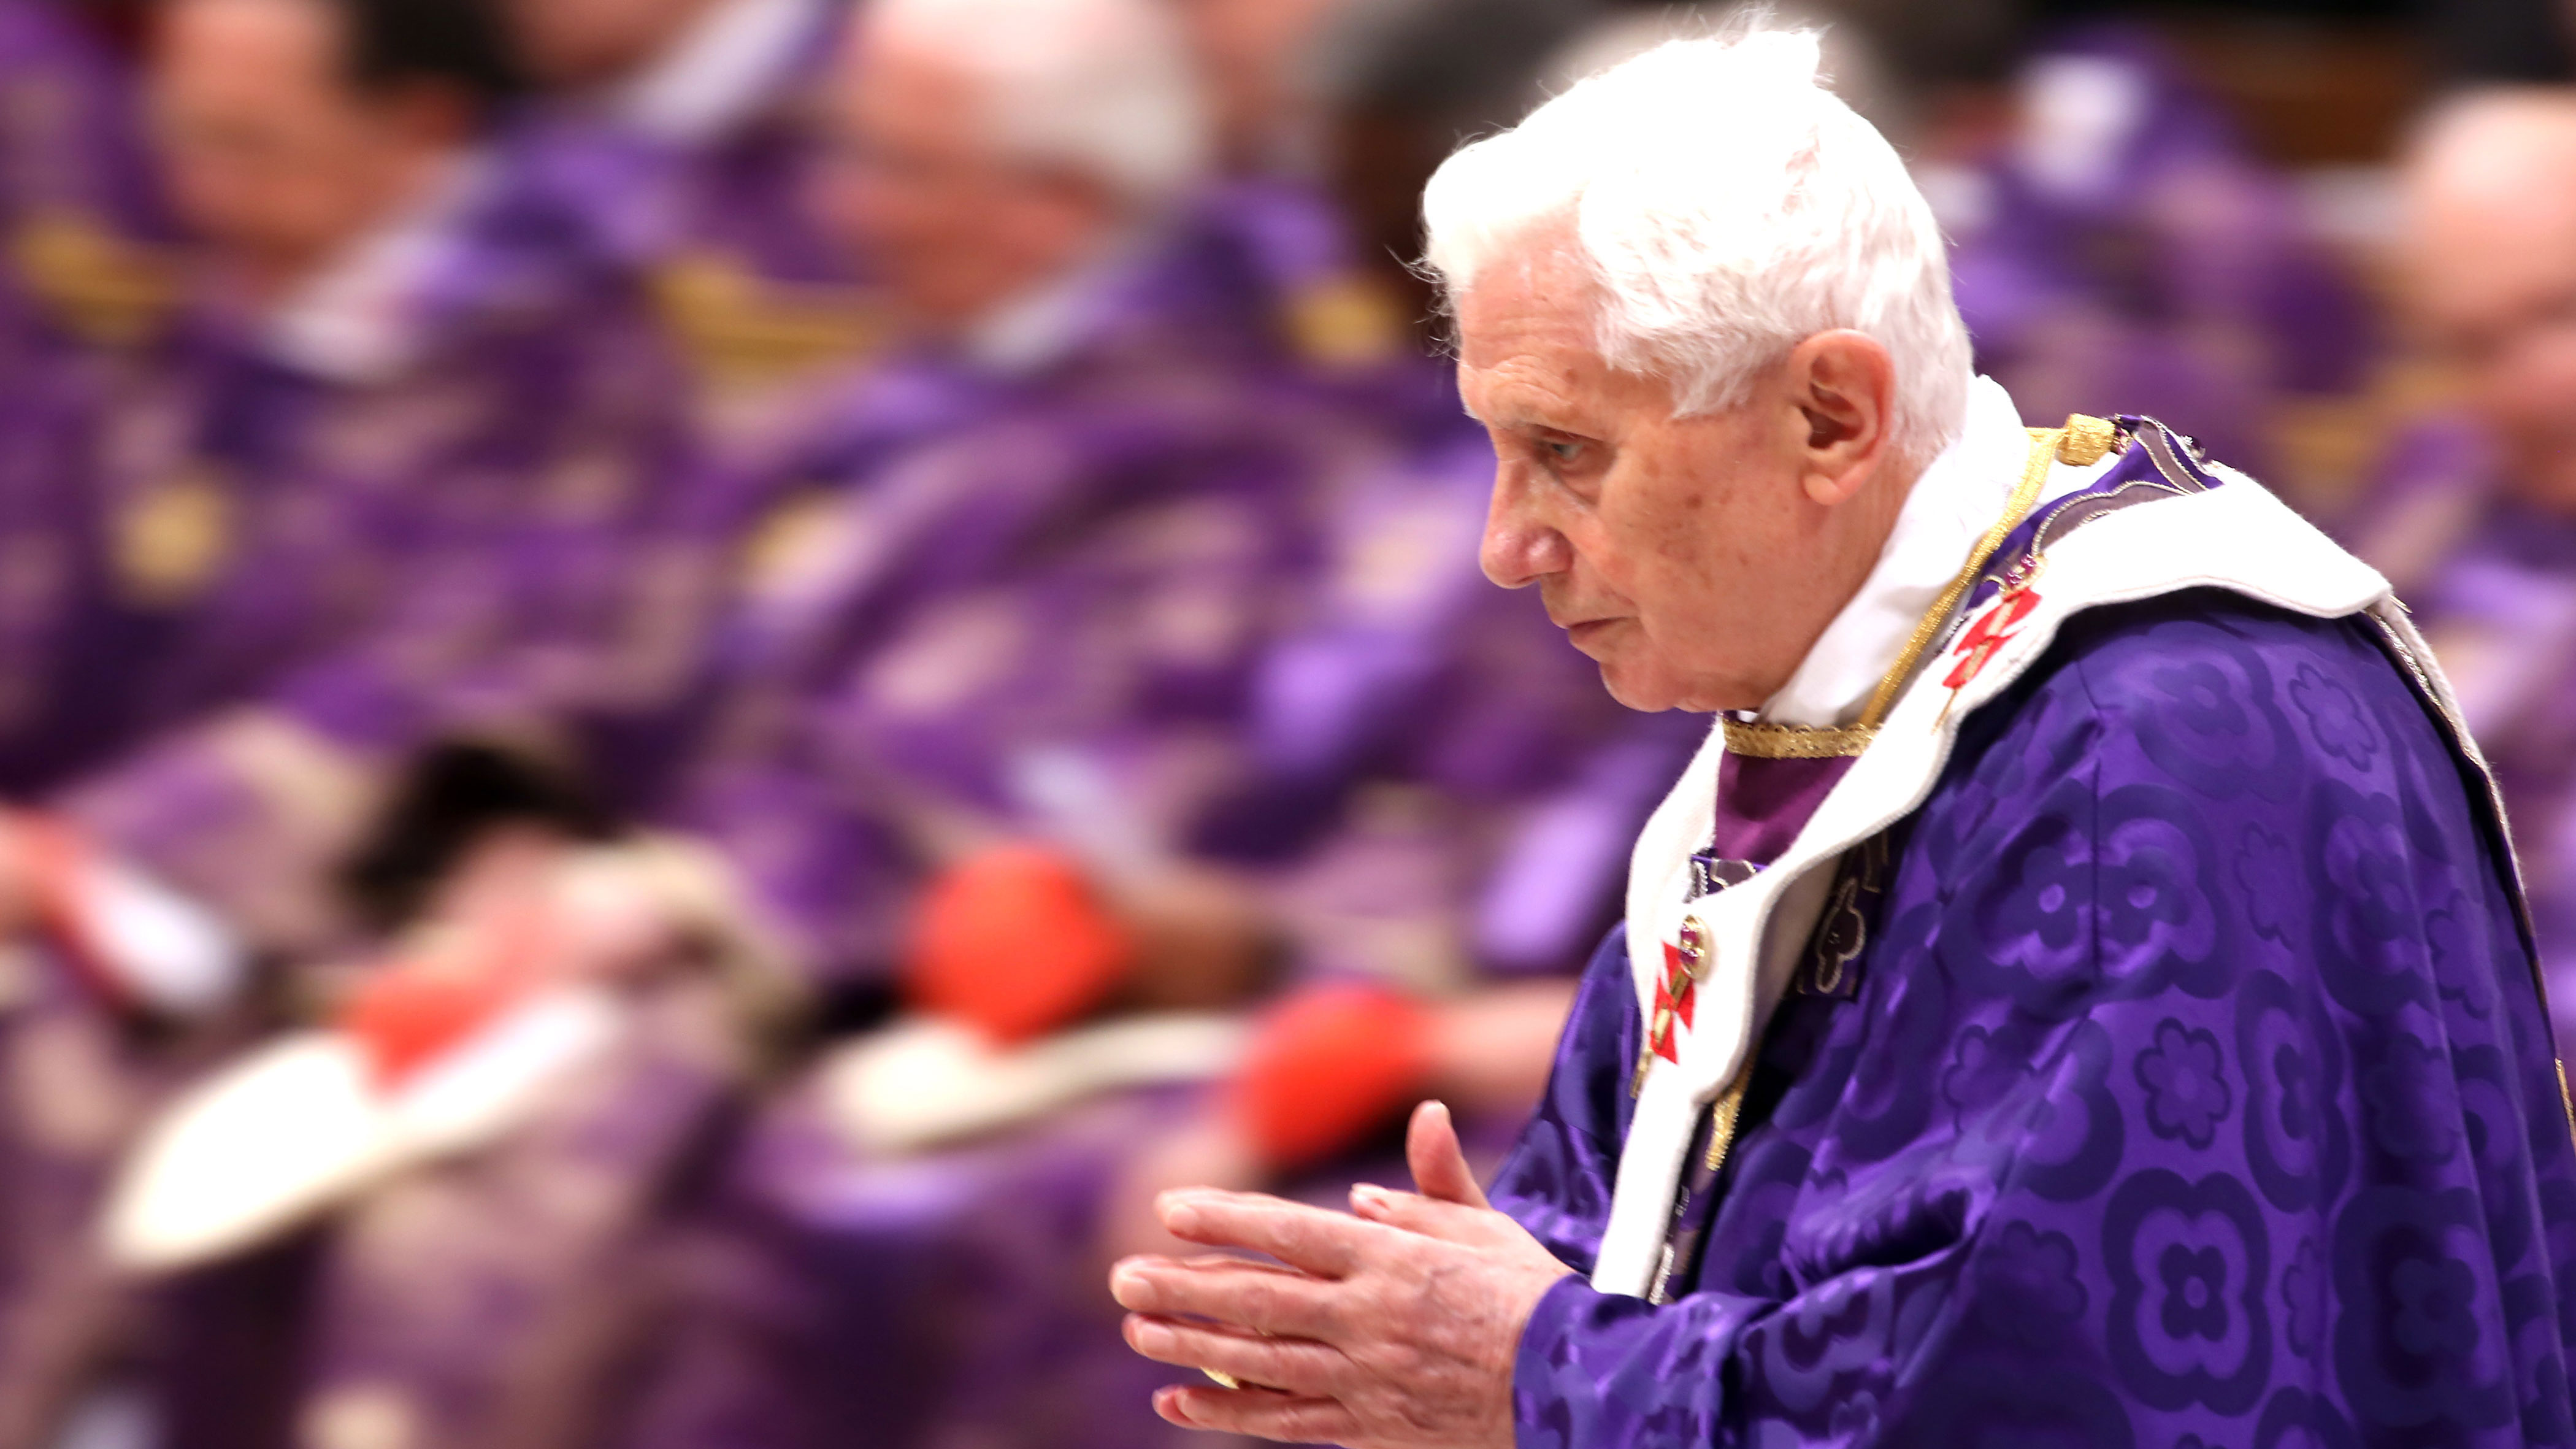 PHOTO: The Vatican maintains that advanced age caused Benedict to step down, but some insist his health is failing.